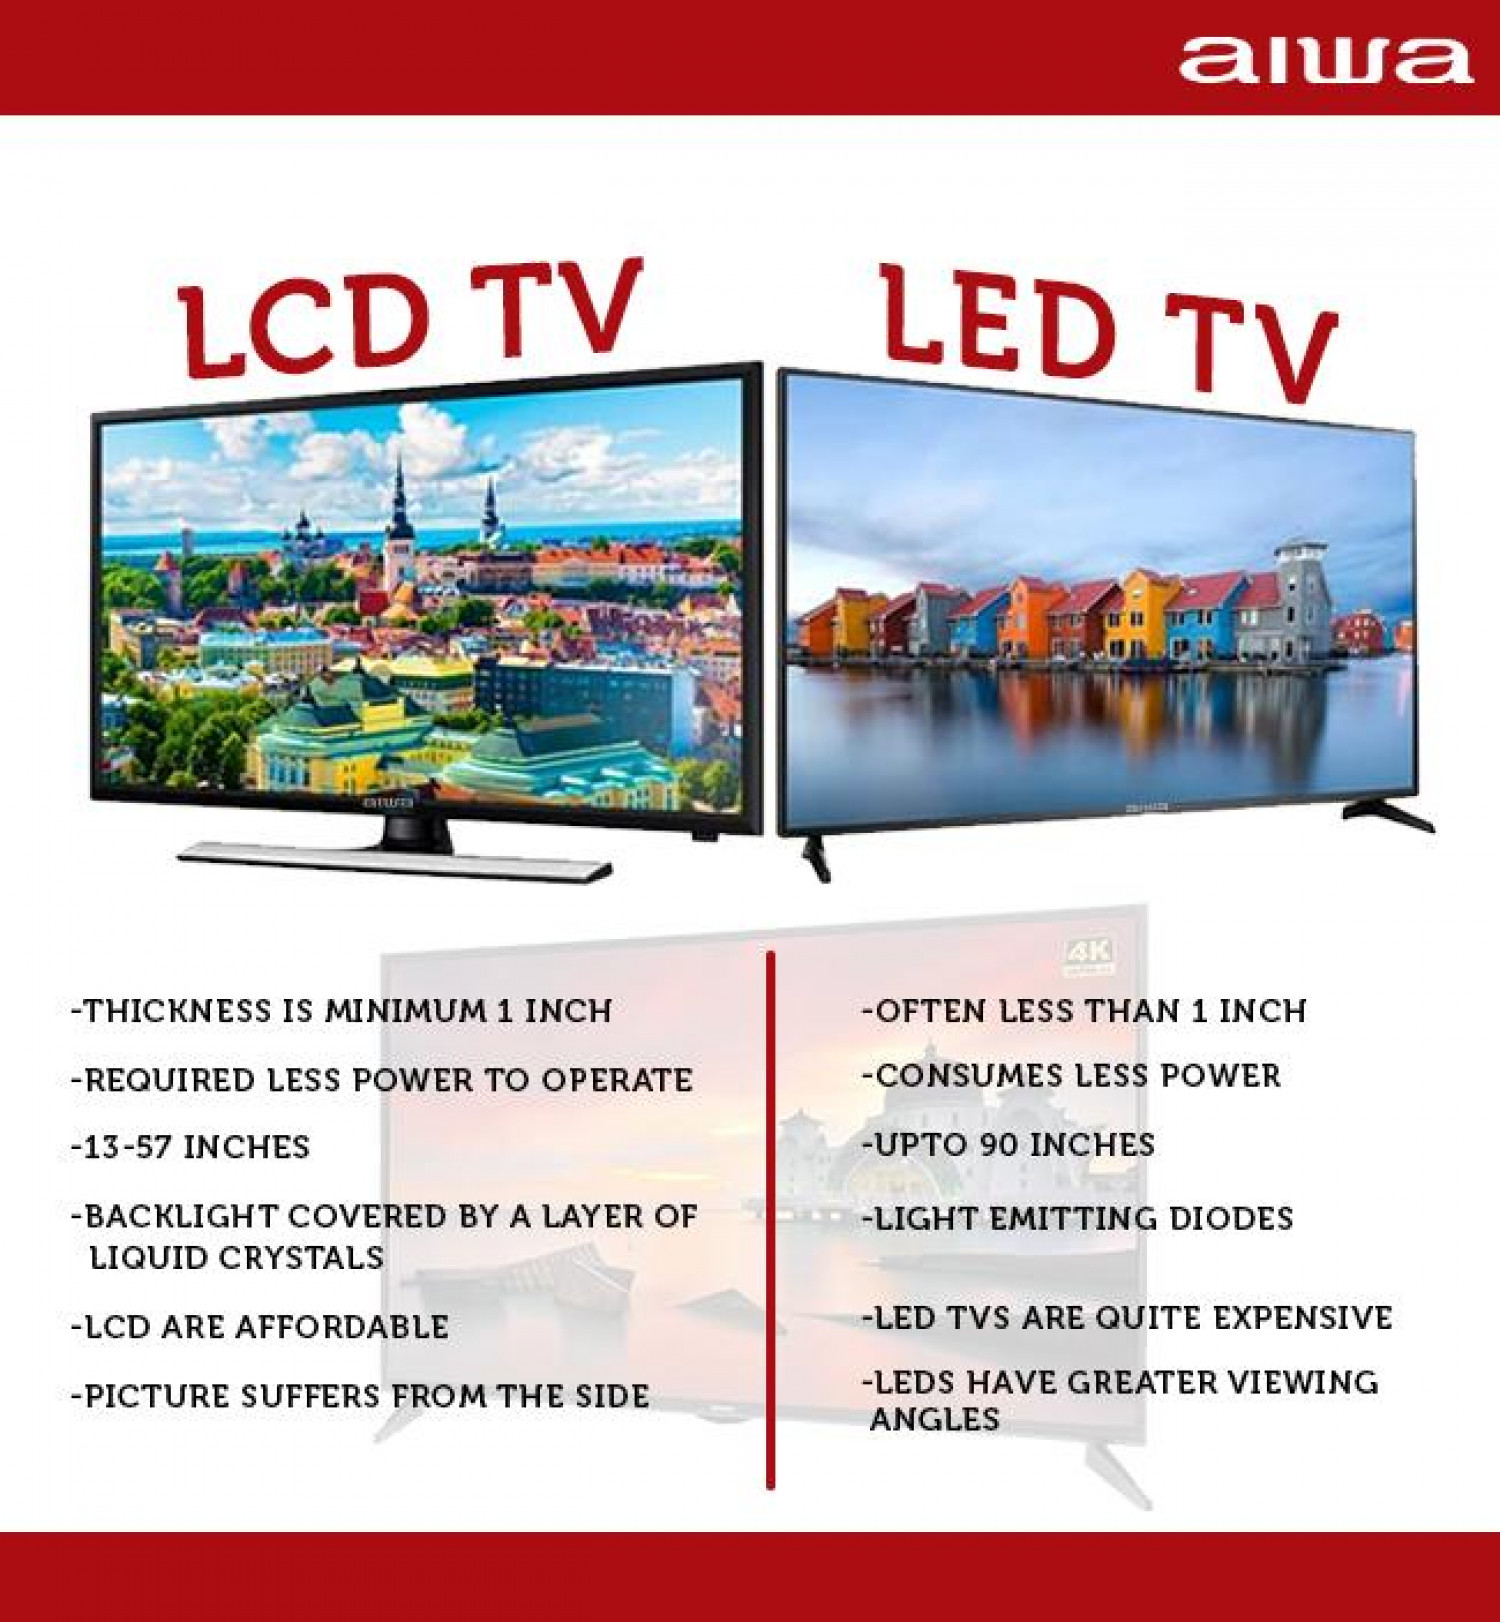 Check All The Difference Between Aiwa Smart LED TV vs LCD TV